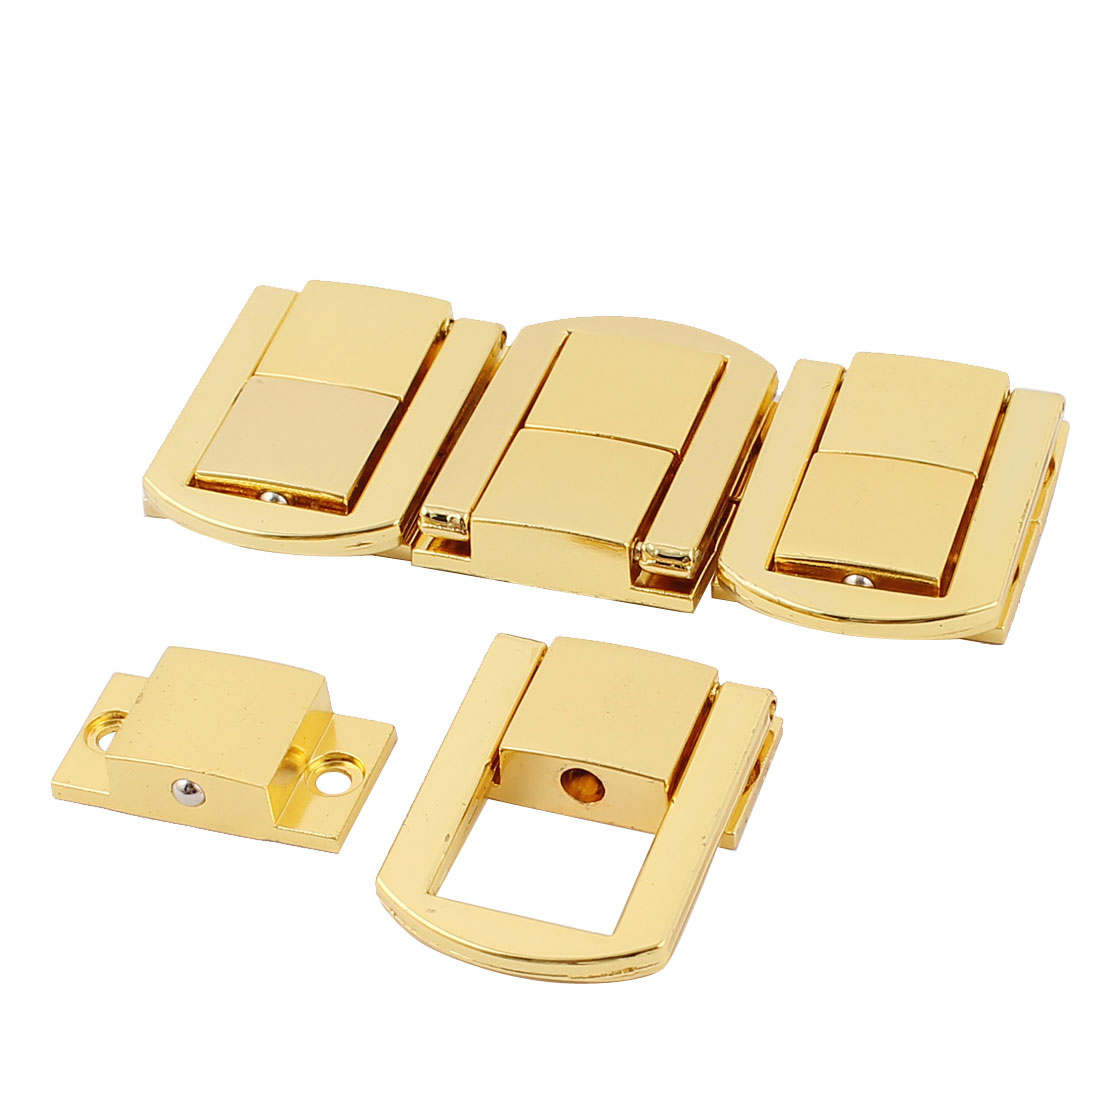 4PCS Spring Loaded Gold Tone Metal Cases Boxes Chest Toggle Catch Lacth Lock